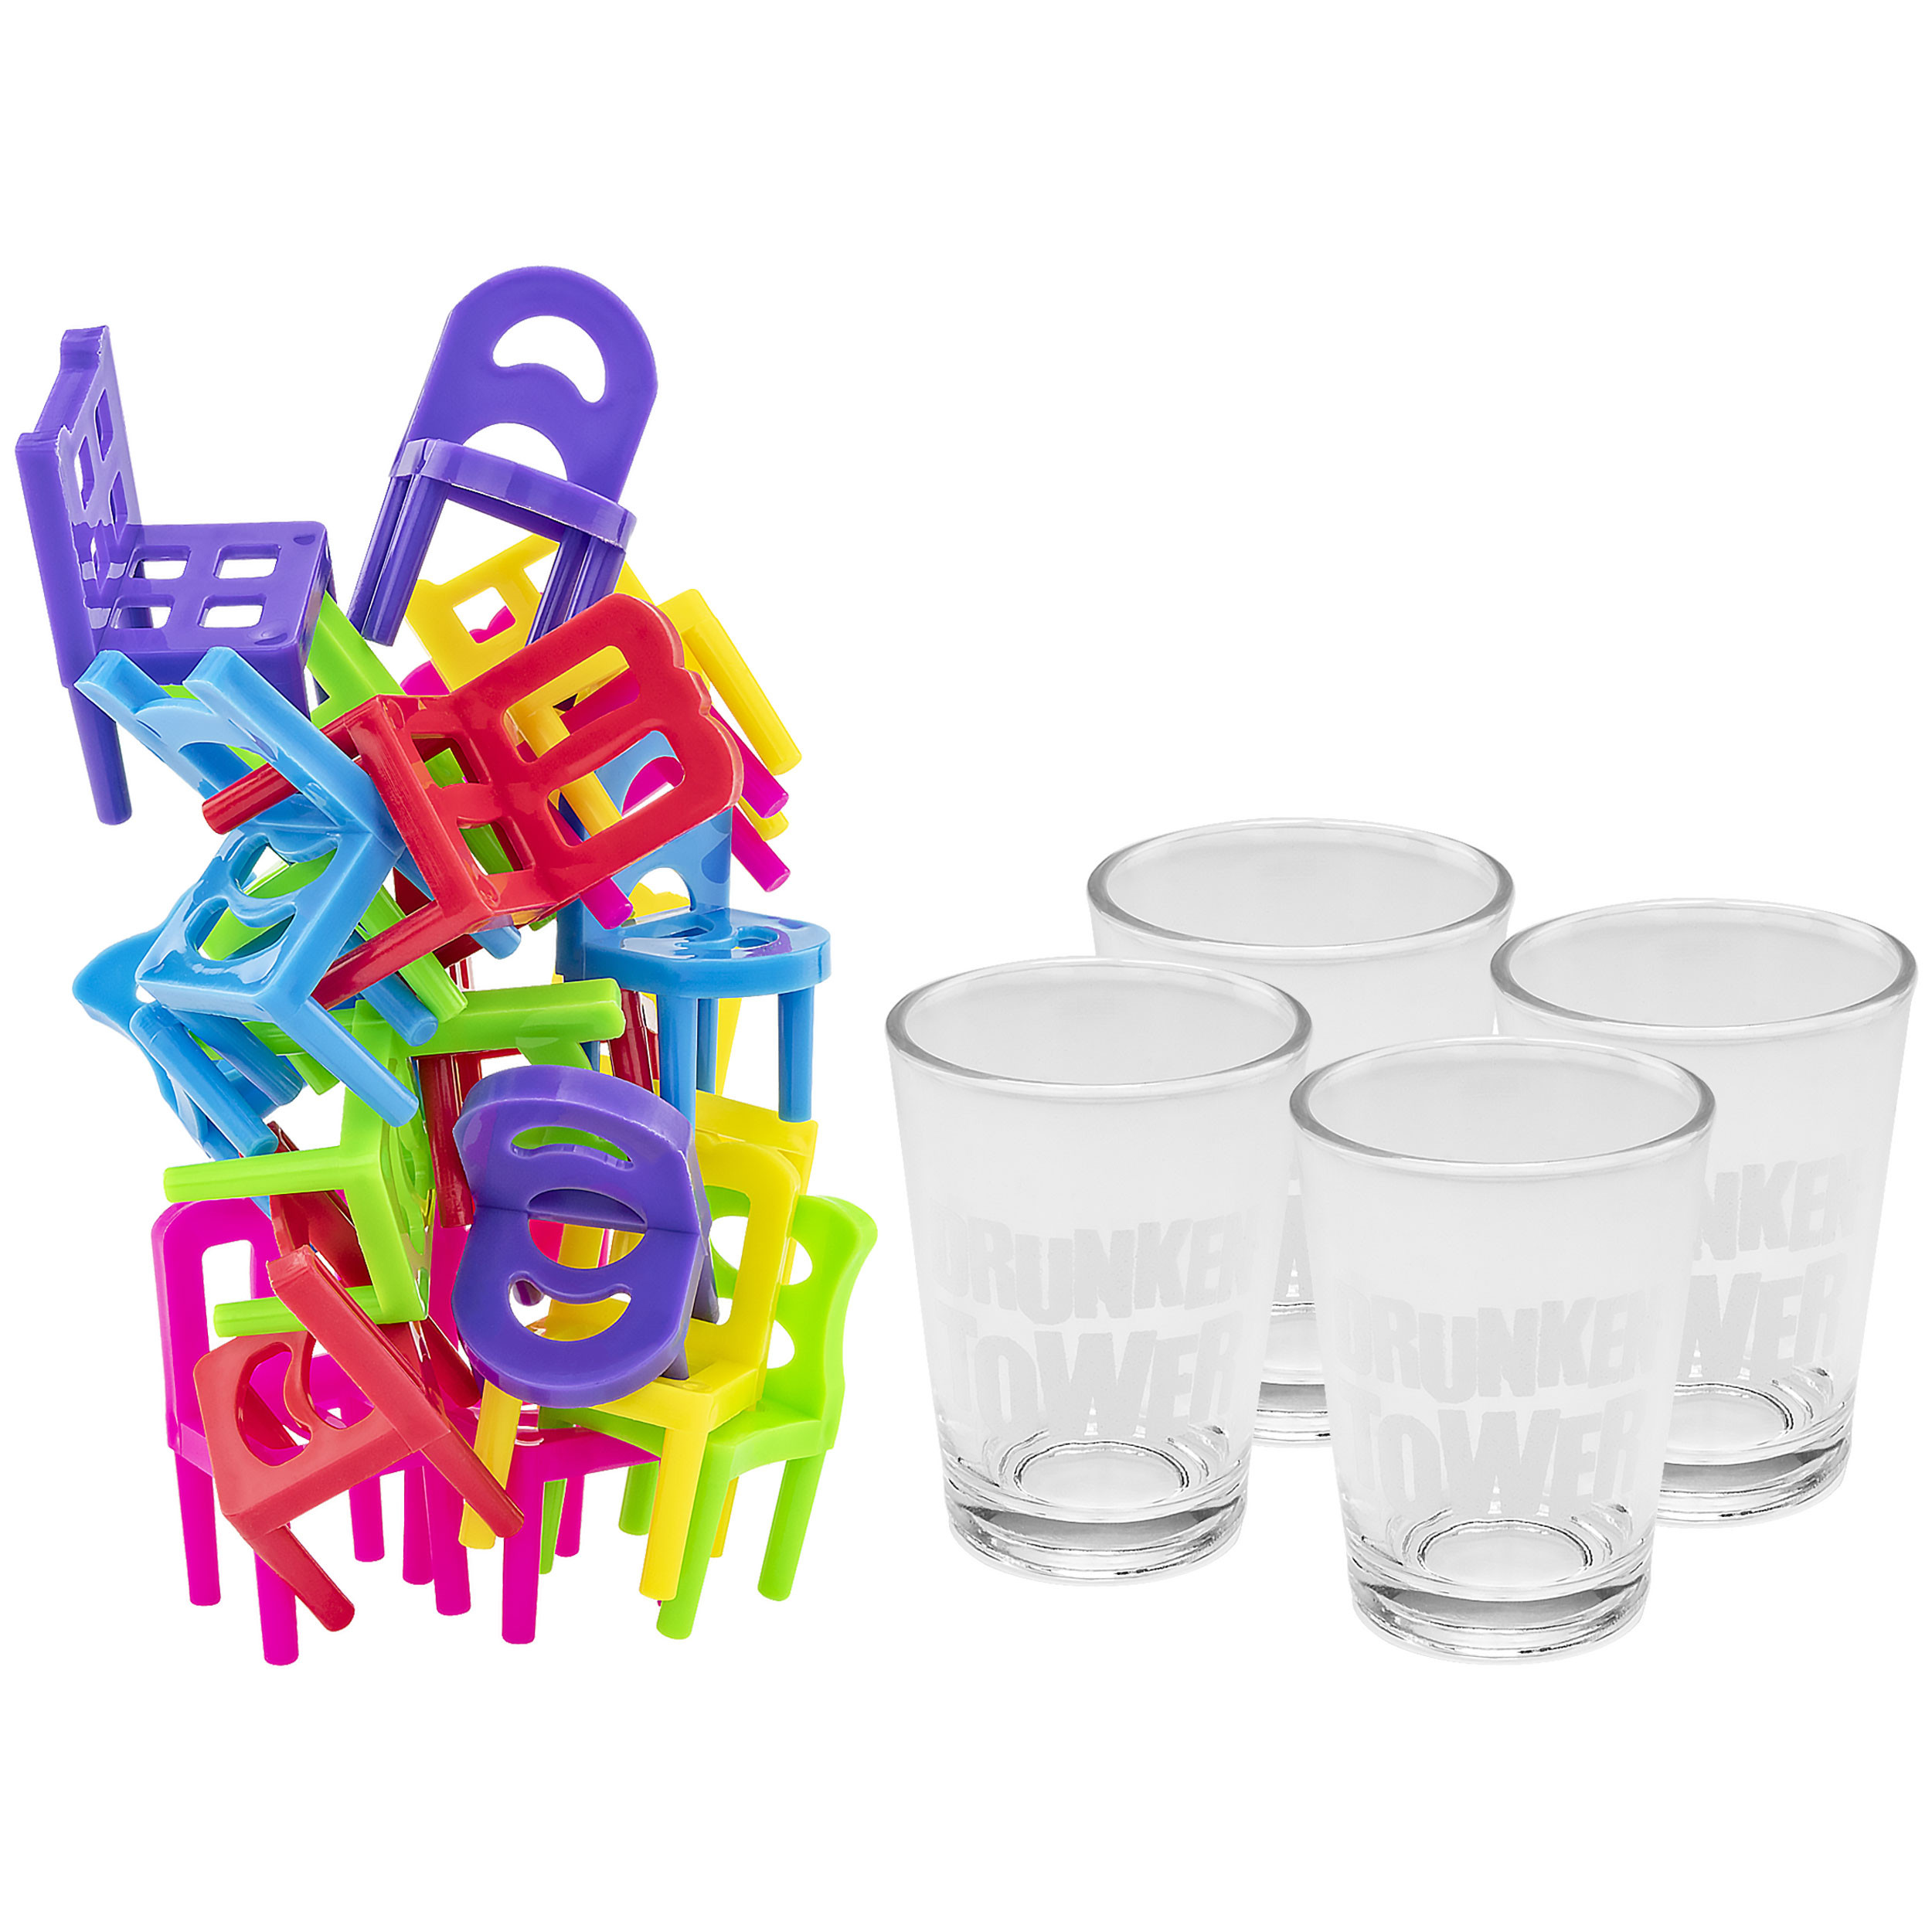 Fairly Odd Novelties Drunken Balance Stacking Drinking Game Includes 4 Shot Glasses 18 Chairs, 2oz, Clear